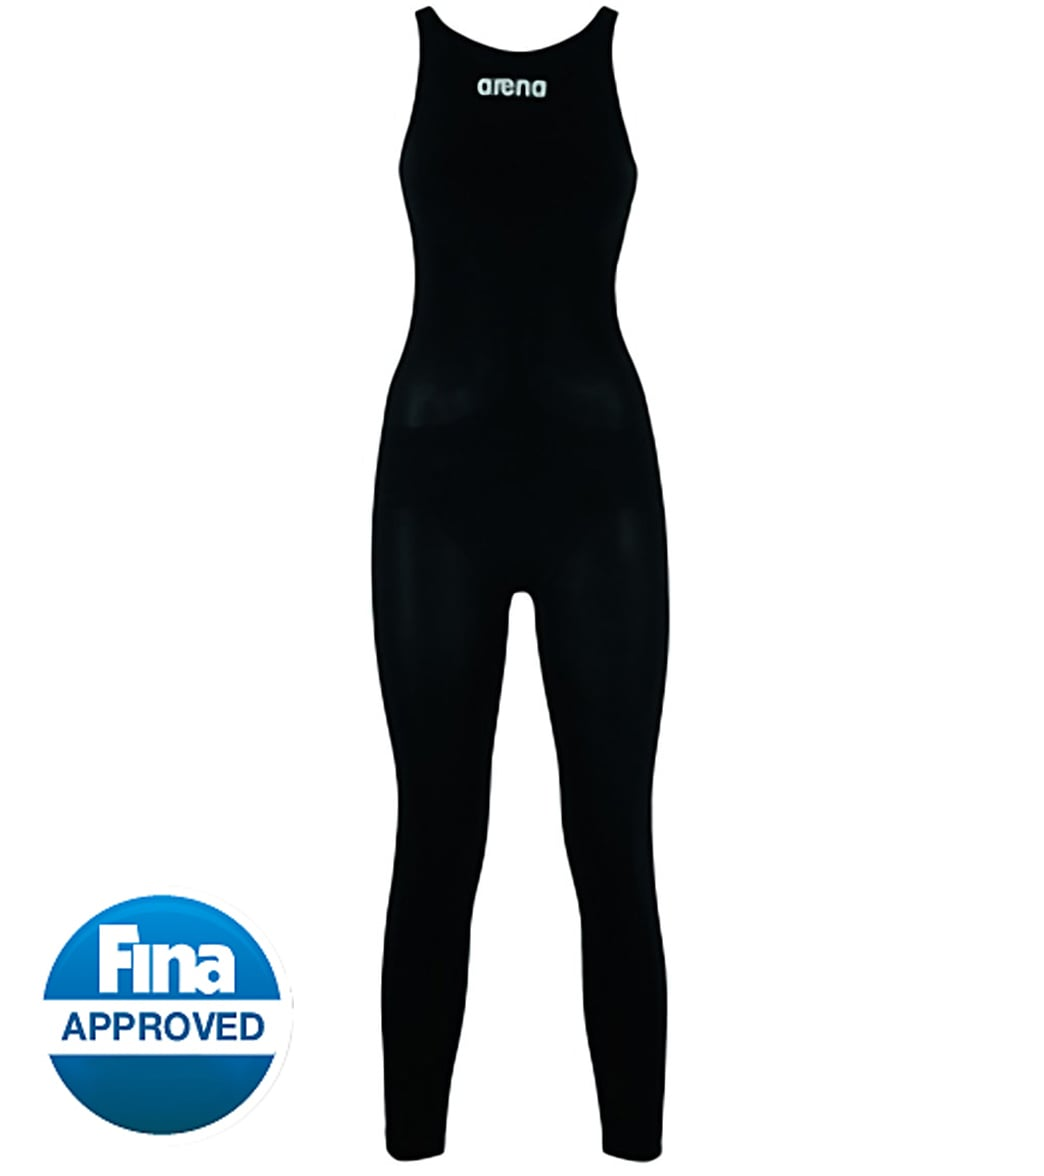 8084f7db11e3e9 Arena Powerskin R-EVO + Women's Open Water WetSuit at SwimOutlet.com - Free  Shipping